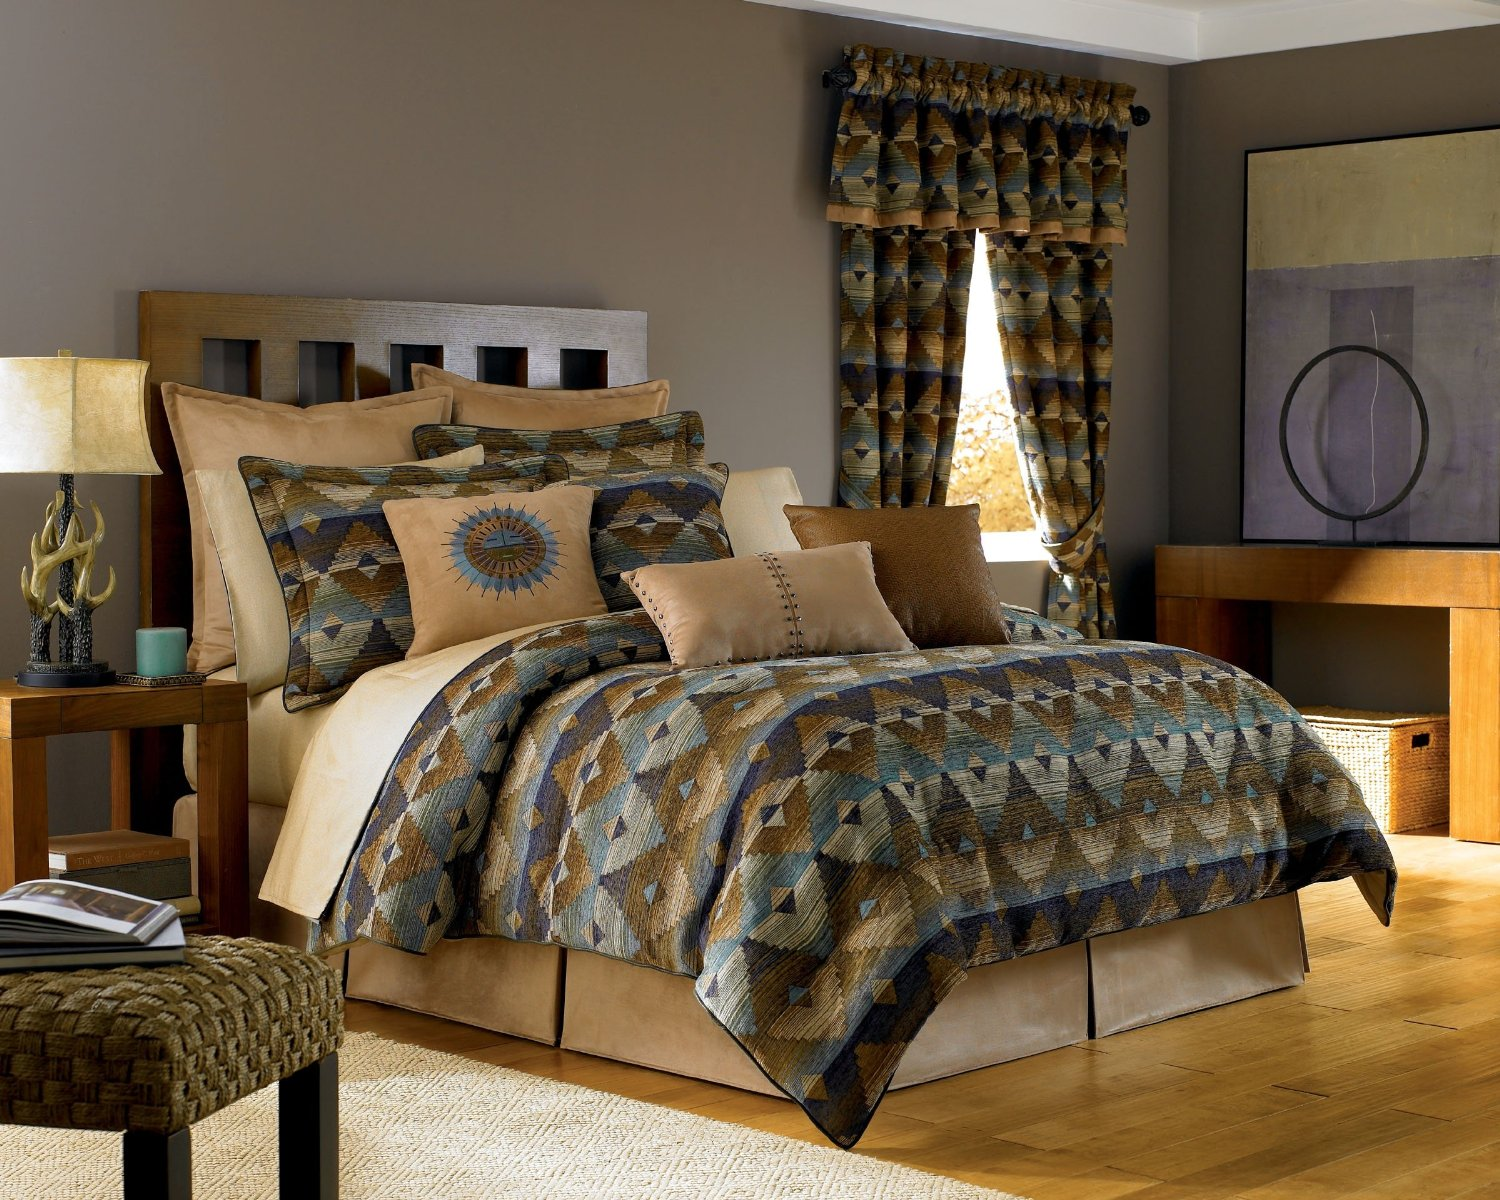 Southwest Bedroom Decor Total Fab Southwest Style Comforters And Native American Indian